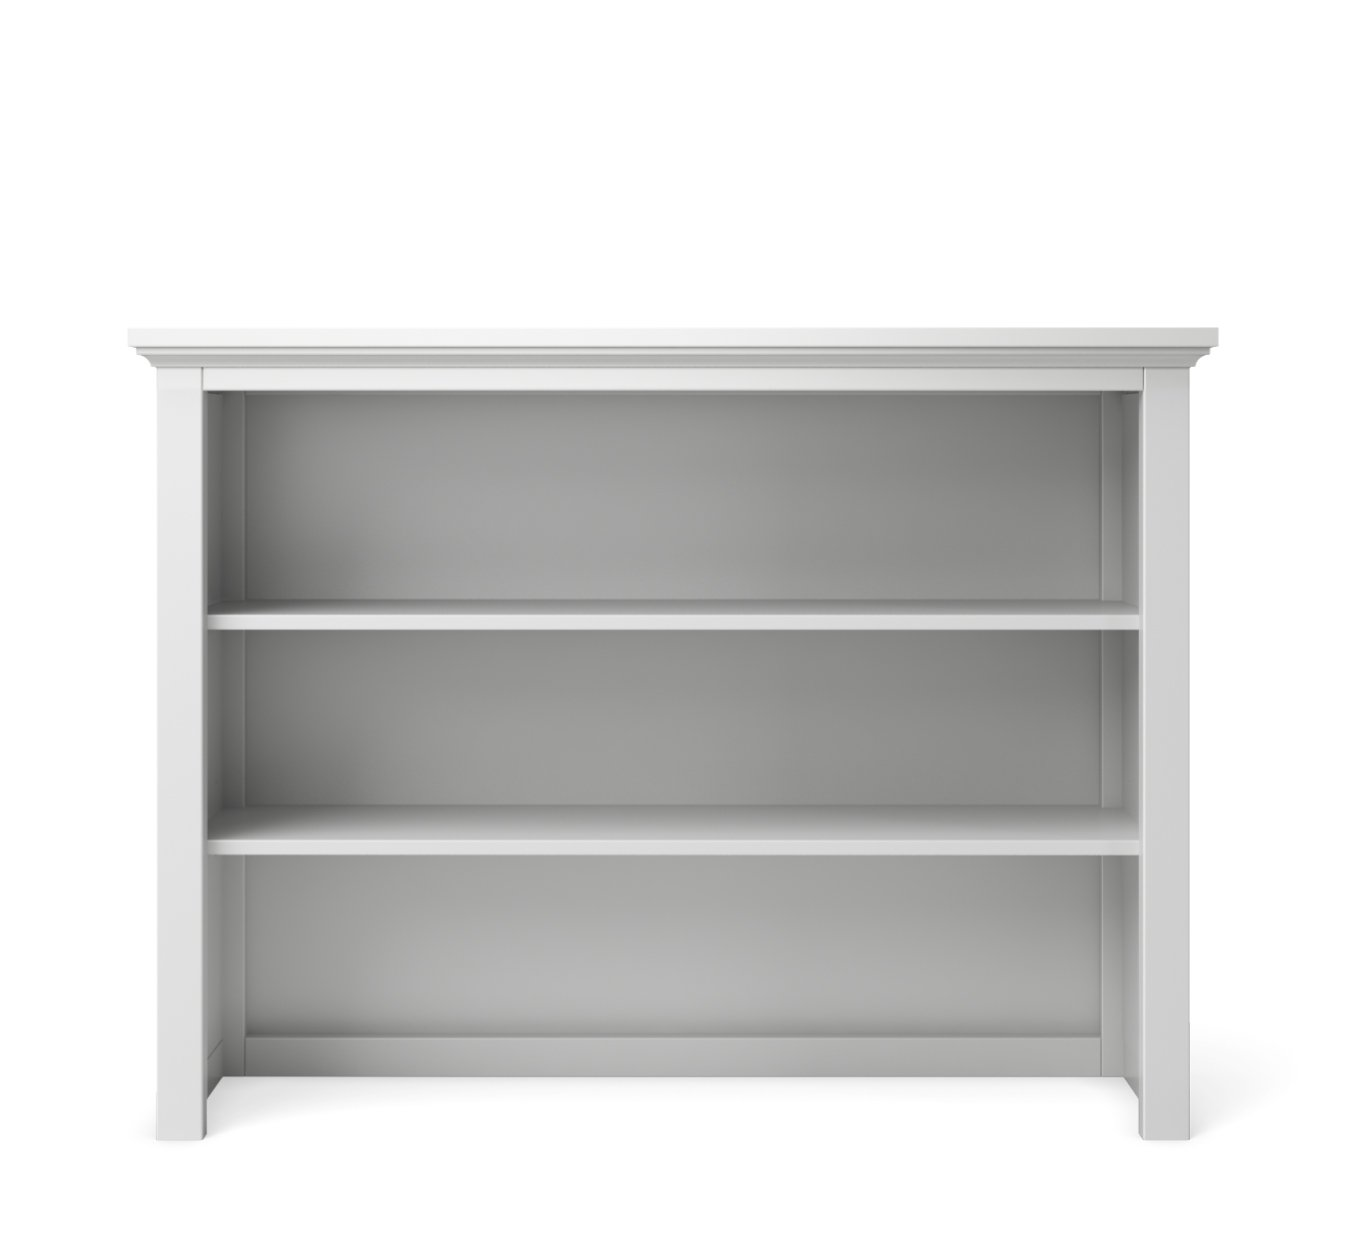 Silva Furniture Hutch in White